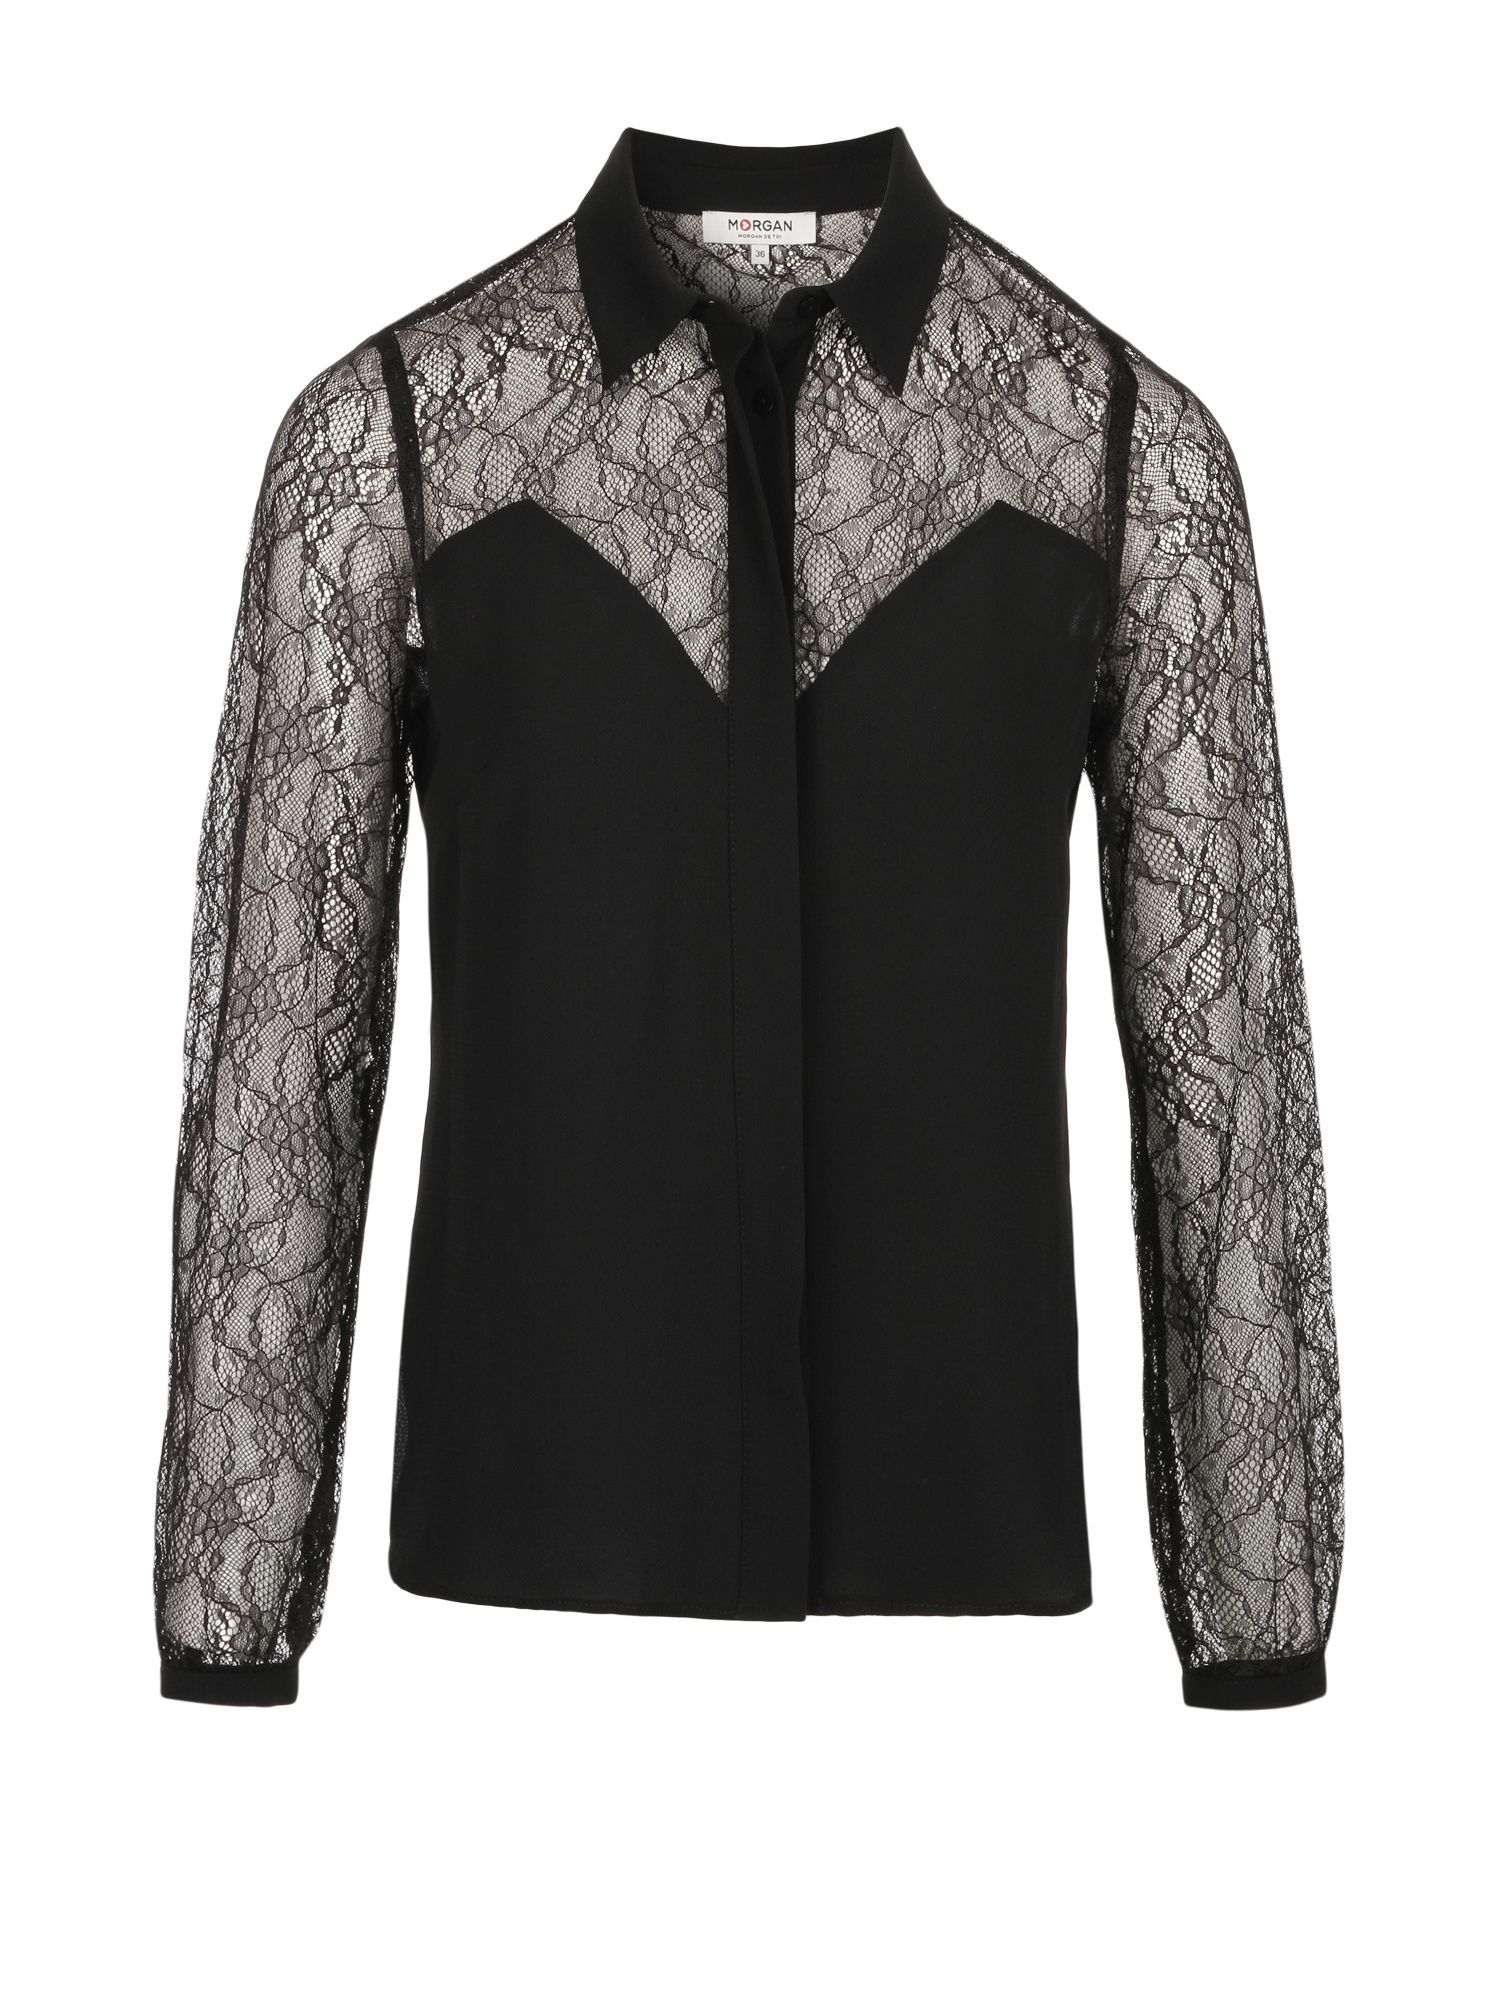 Morgan Crepe And Lace Shirt, Black